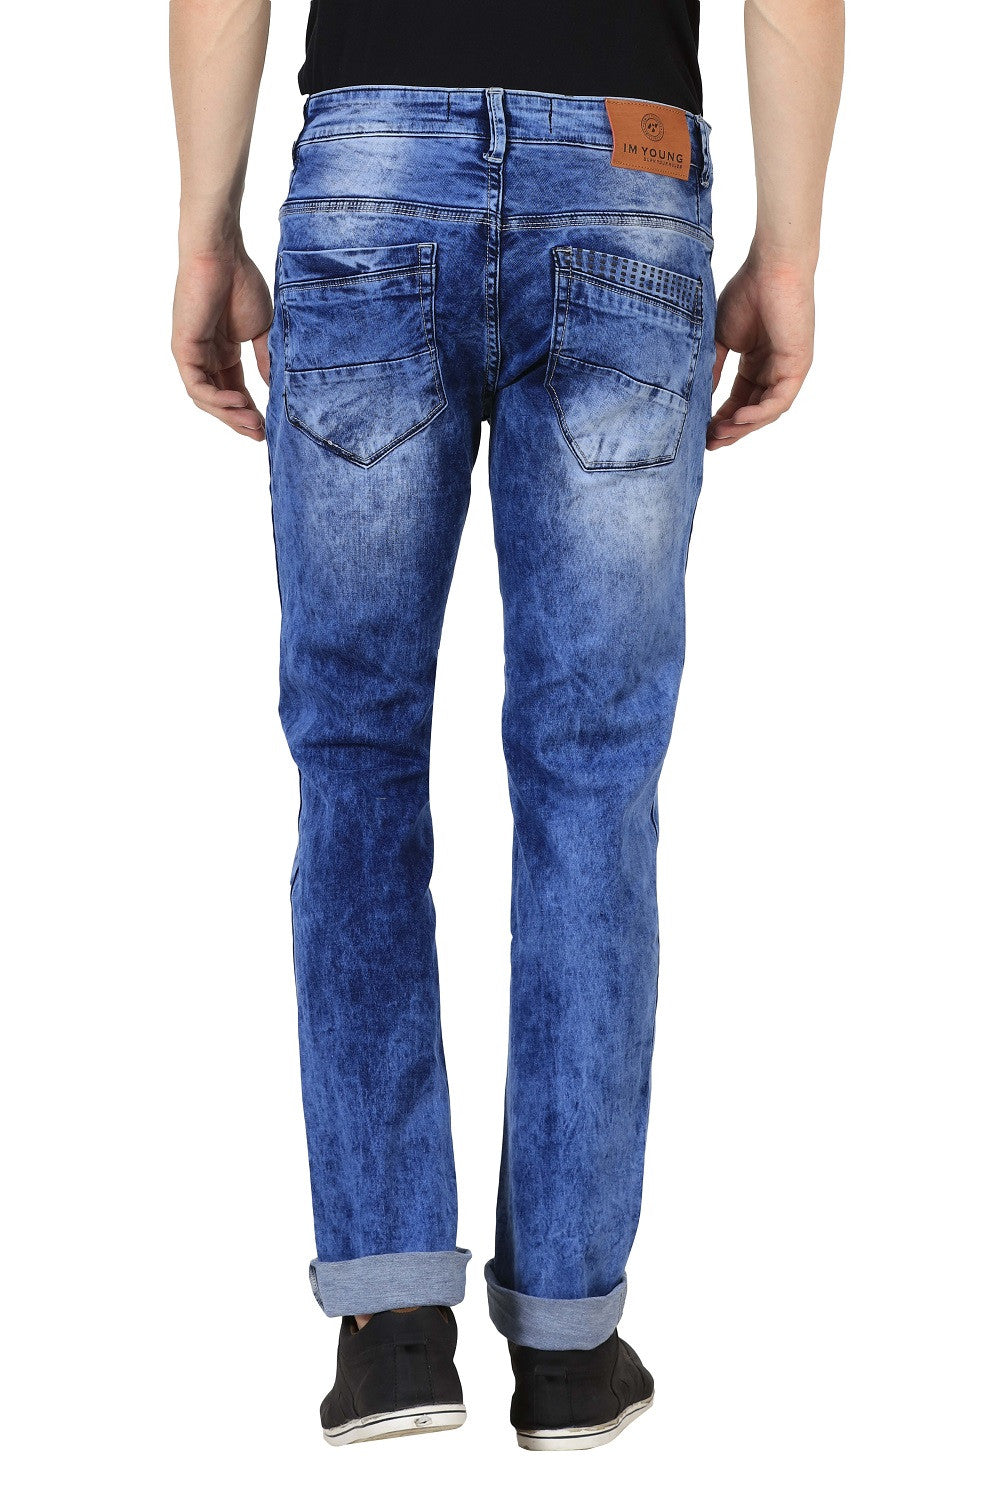 IMYOUNG Light Blue Slim Fit Jeans